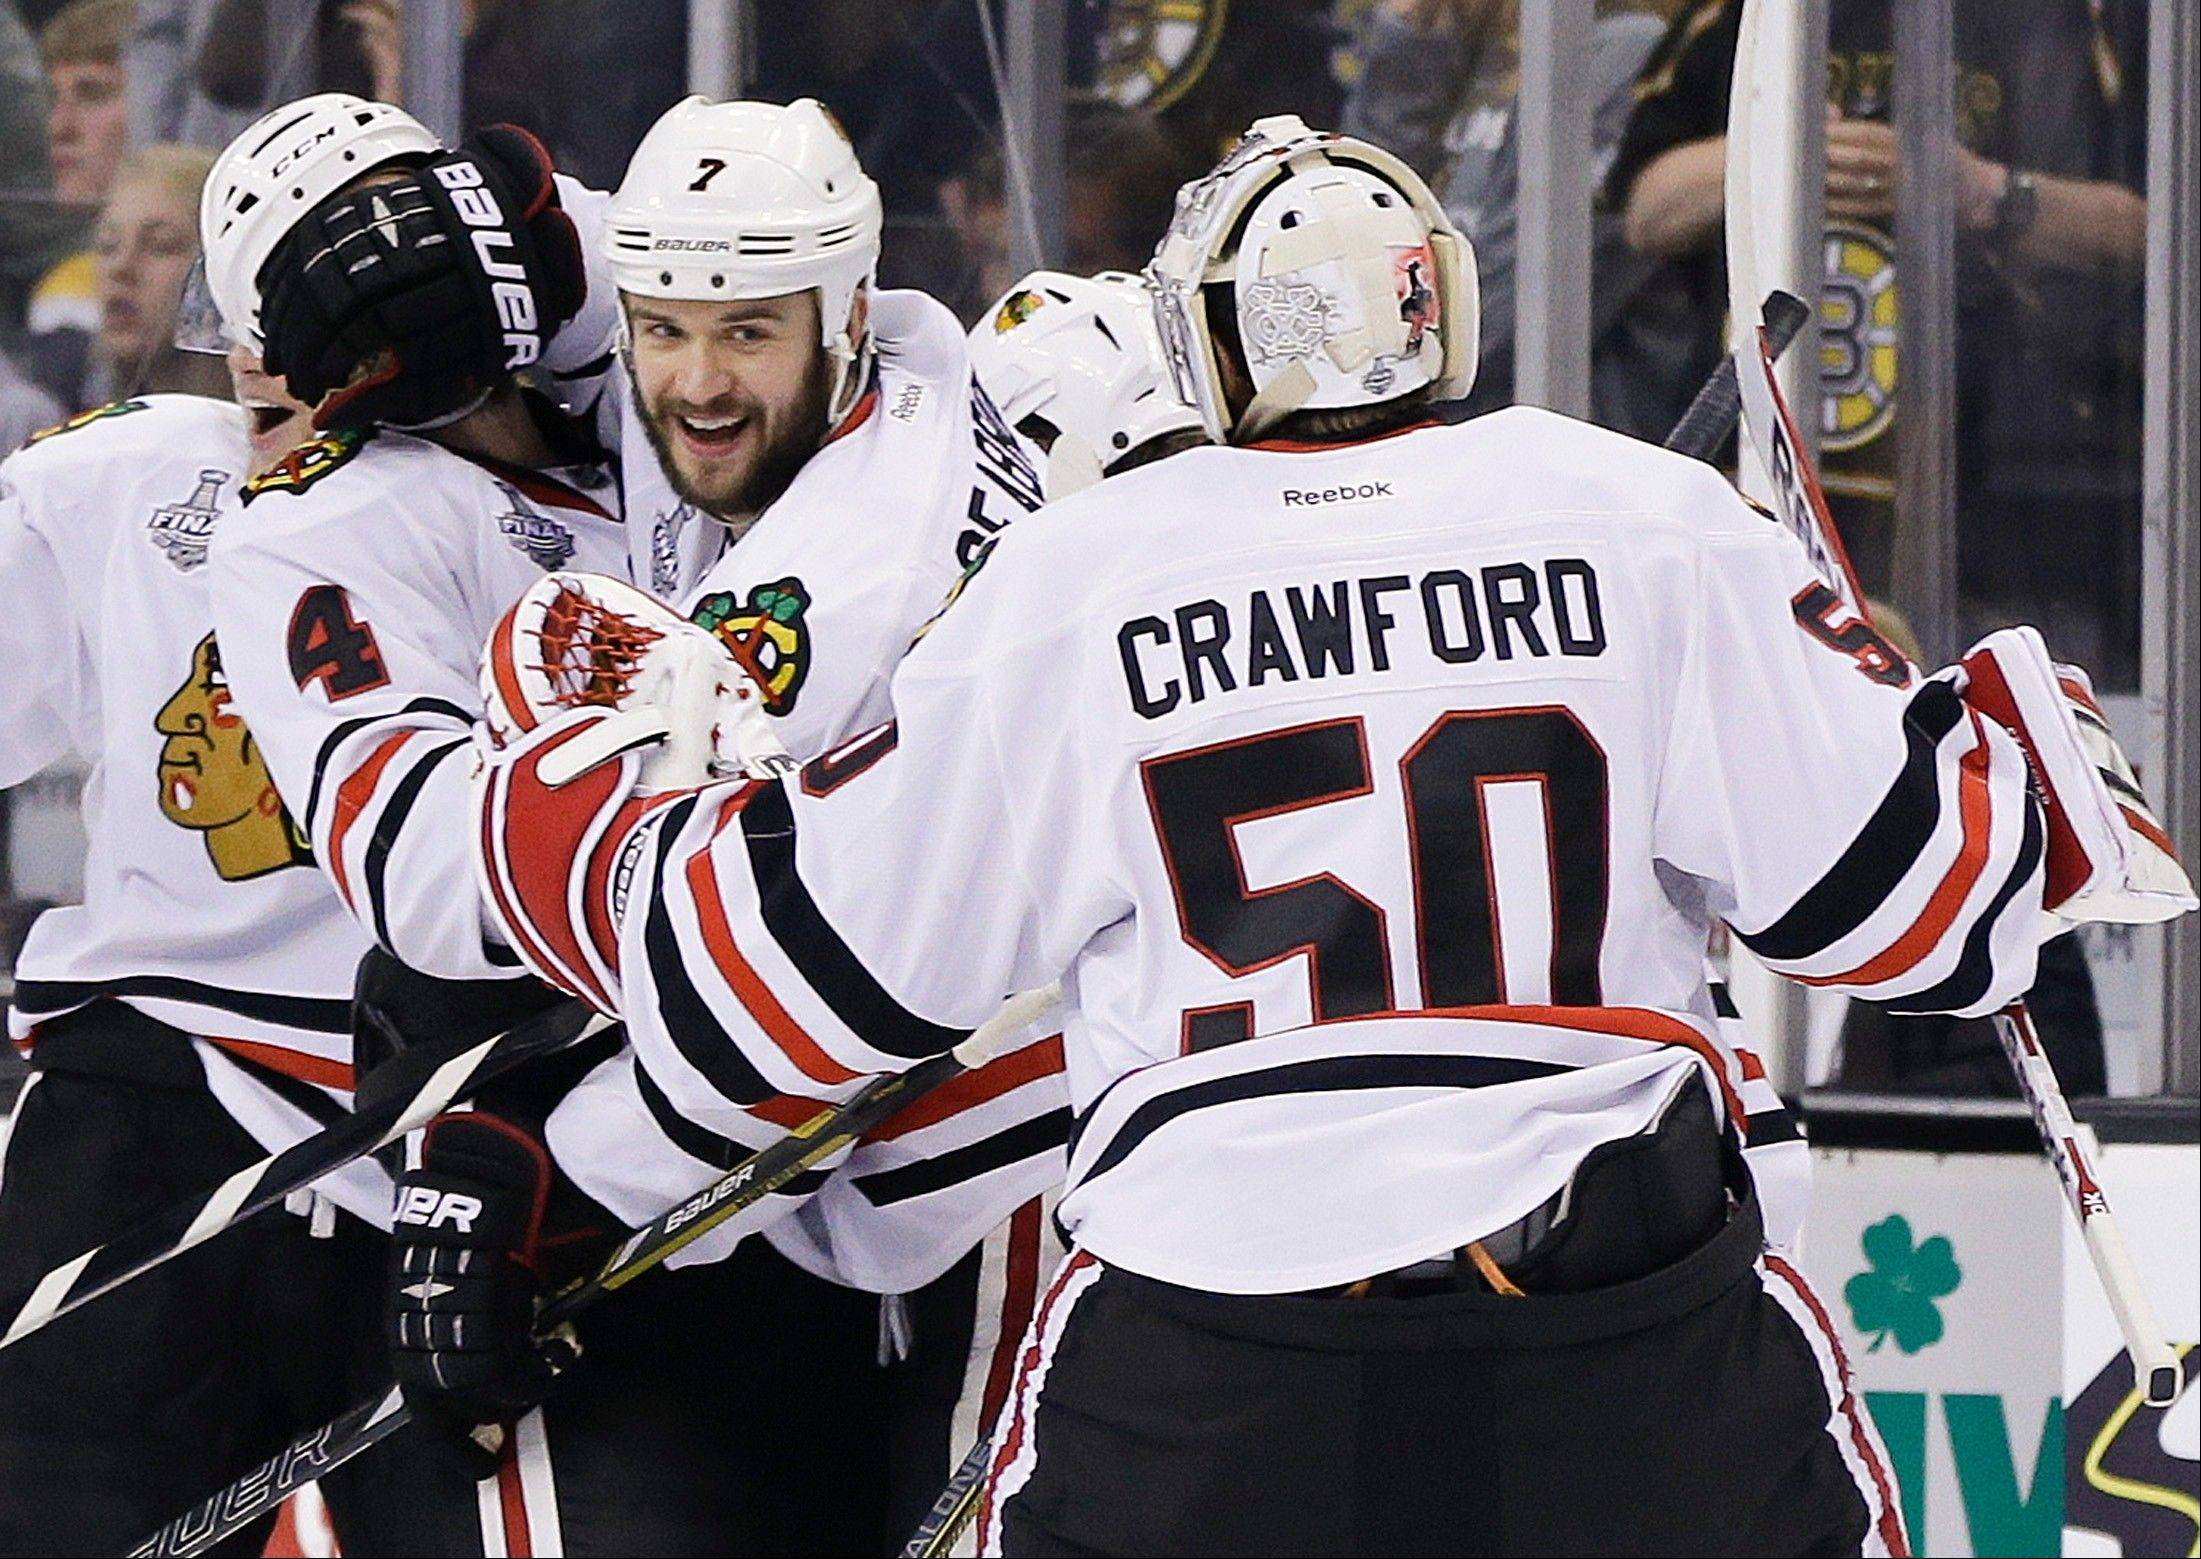 Chicago Blackhawks defenseman Brent Seabrook (7) celebrates his game-winning goal against the Boston Bruins with Chicago Blackhawks goalie Corey Crawford (50) during the first overtime period in Game 4 of the NHL hockey Stanley Cup Finals.